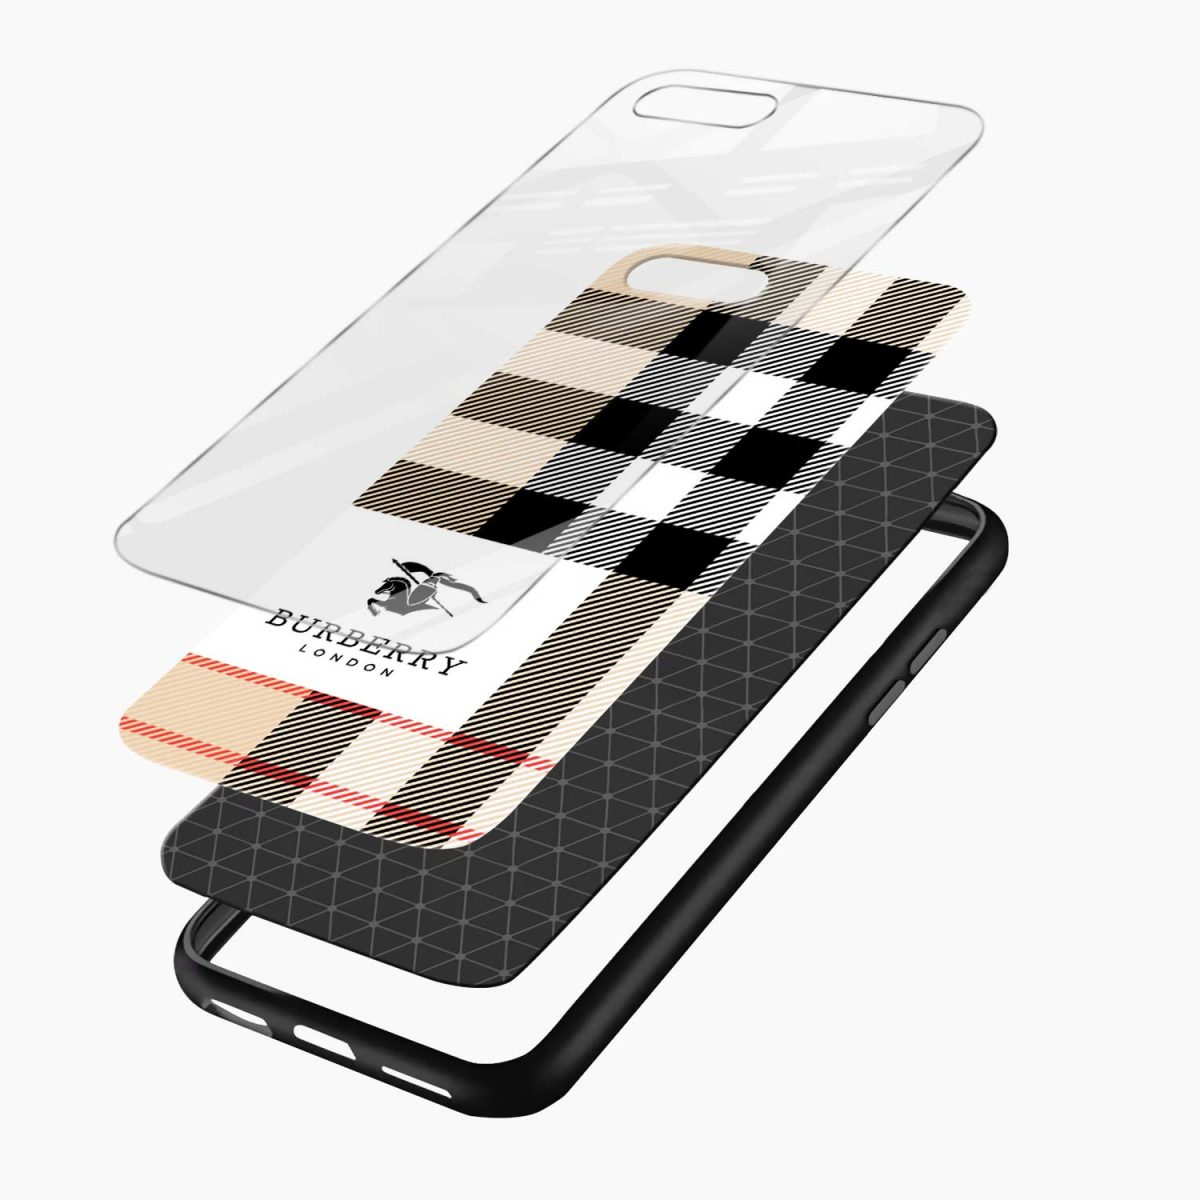 burberry cross lines pattern layers view apple iphone 7 8 plus back cover